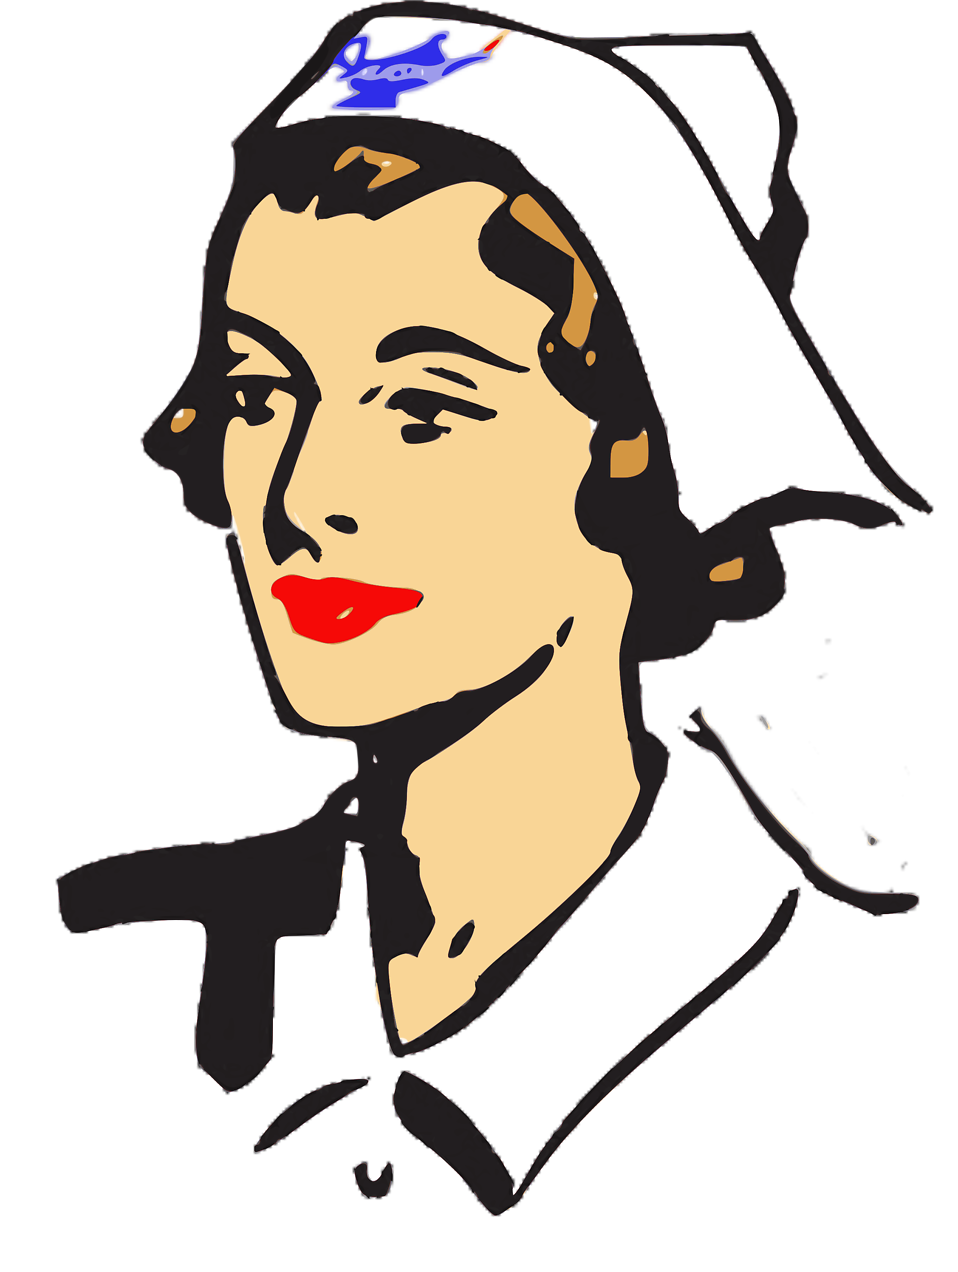 Nurse free stock photo. Nursing clipart woman doctor